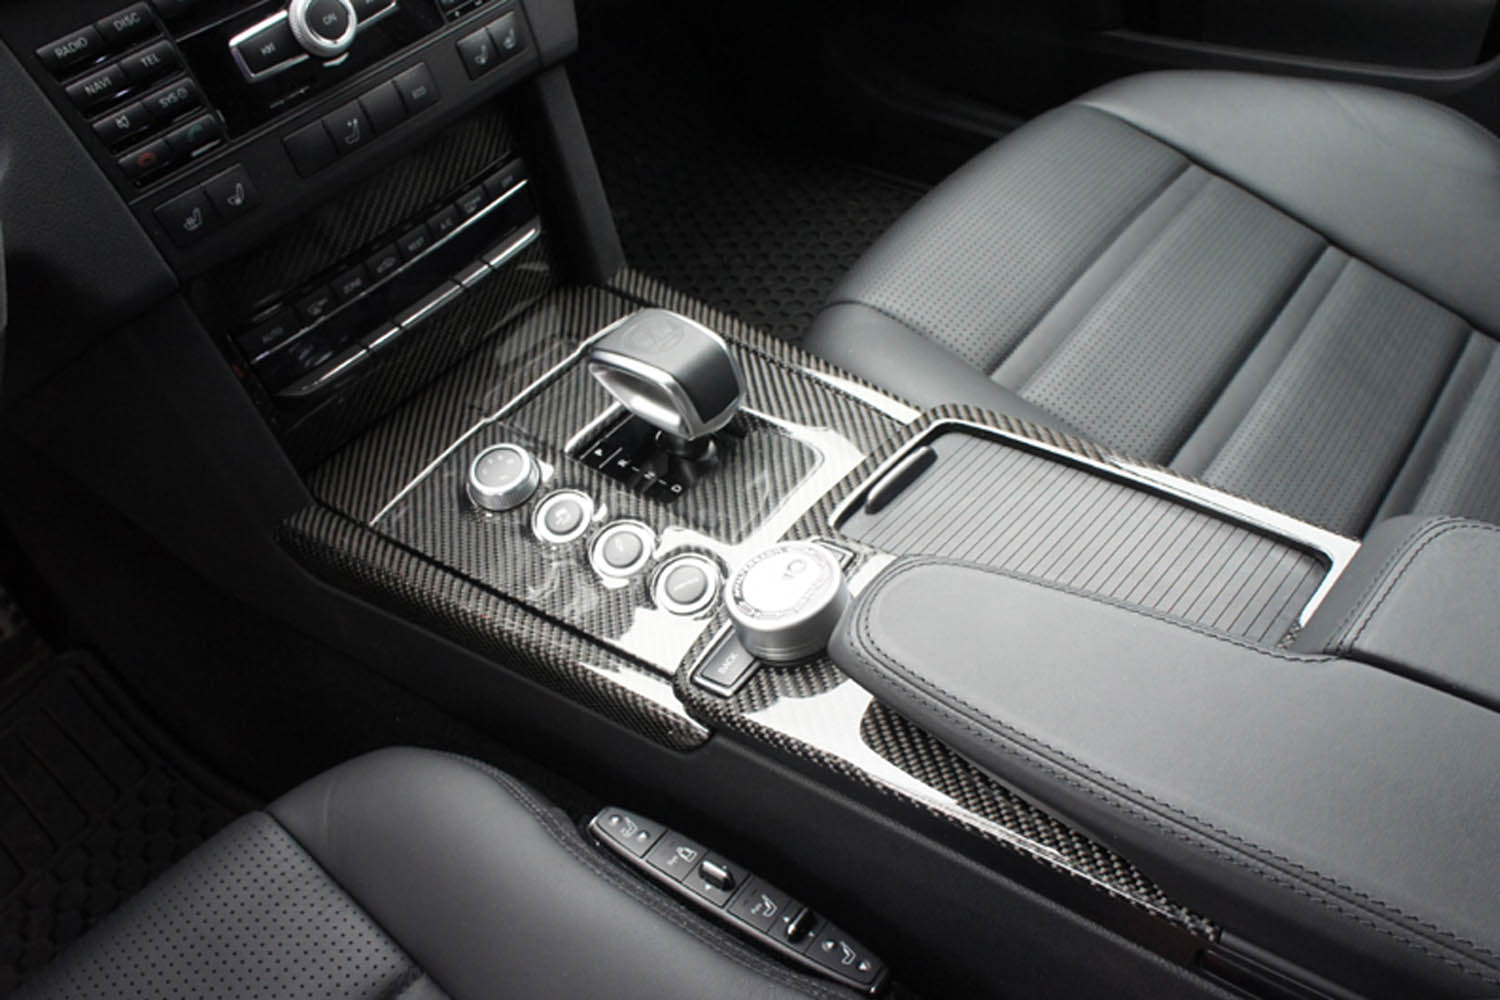 Mercedes Benz E 63 AMG W212 carbon center console real carbon cover armrest interior carbon parts console gear shift knob